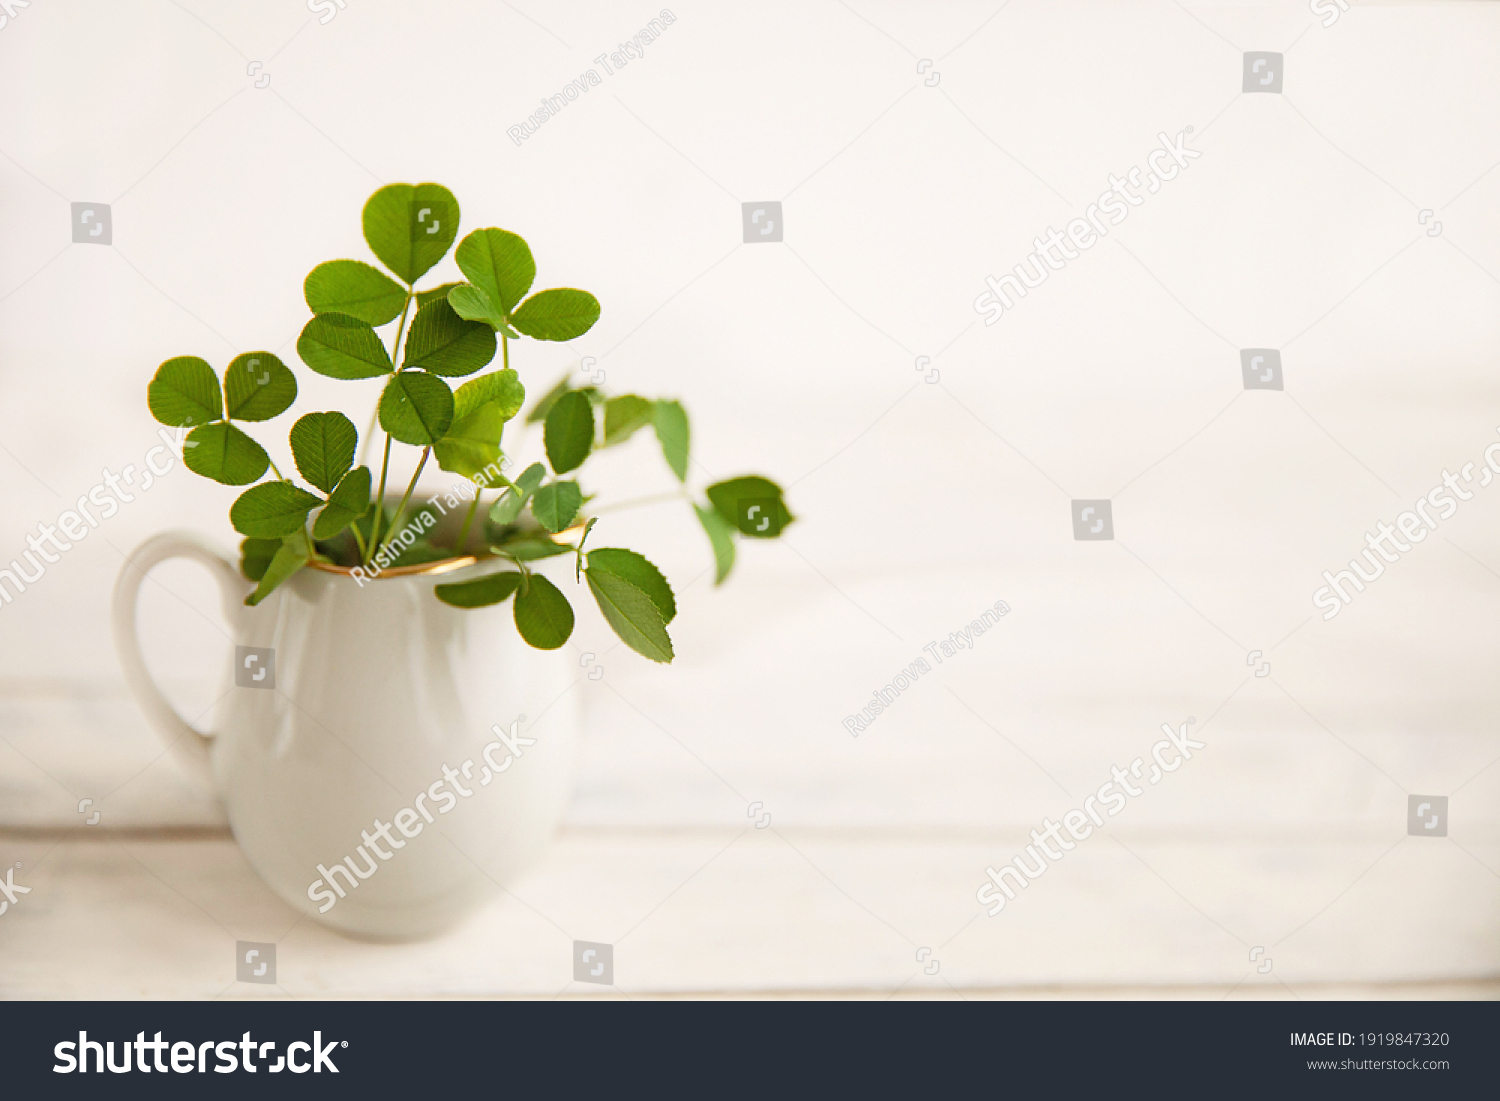 green clover leaves in a white jug on a white wooden background #1919847320